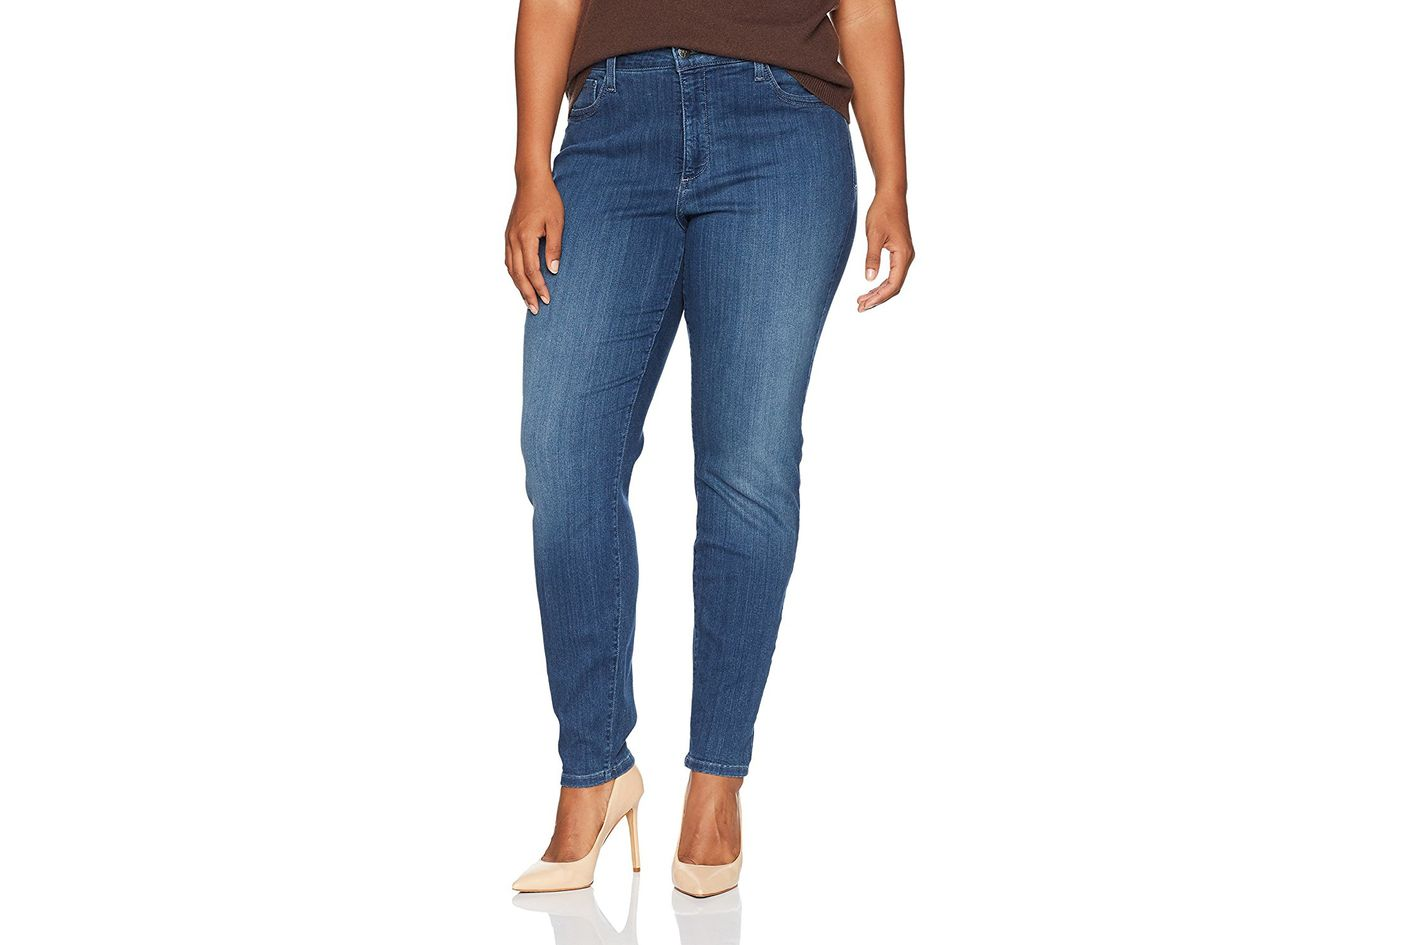 ff05febdf5 Best small-waisted plus-size jeans. NYDJ Women s Plus Size Ami Super Skinny  Jeans. ""